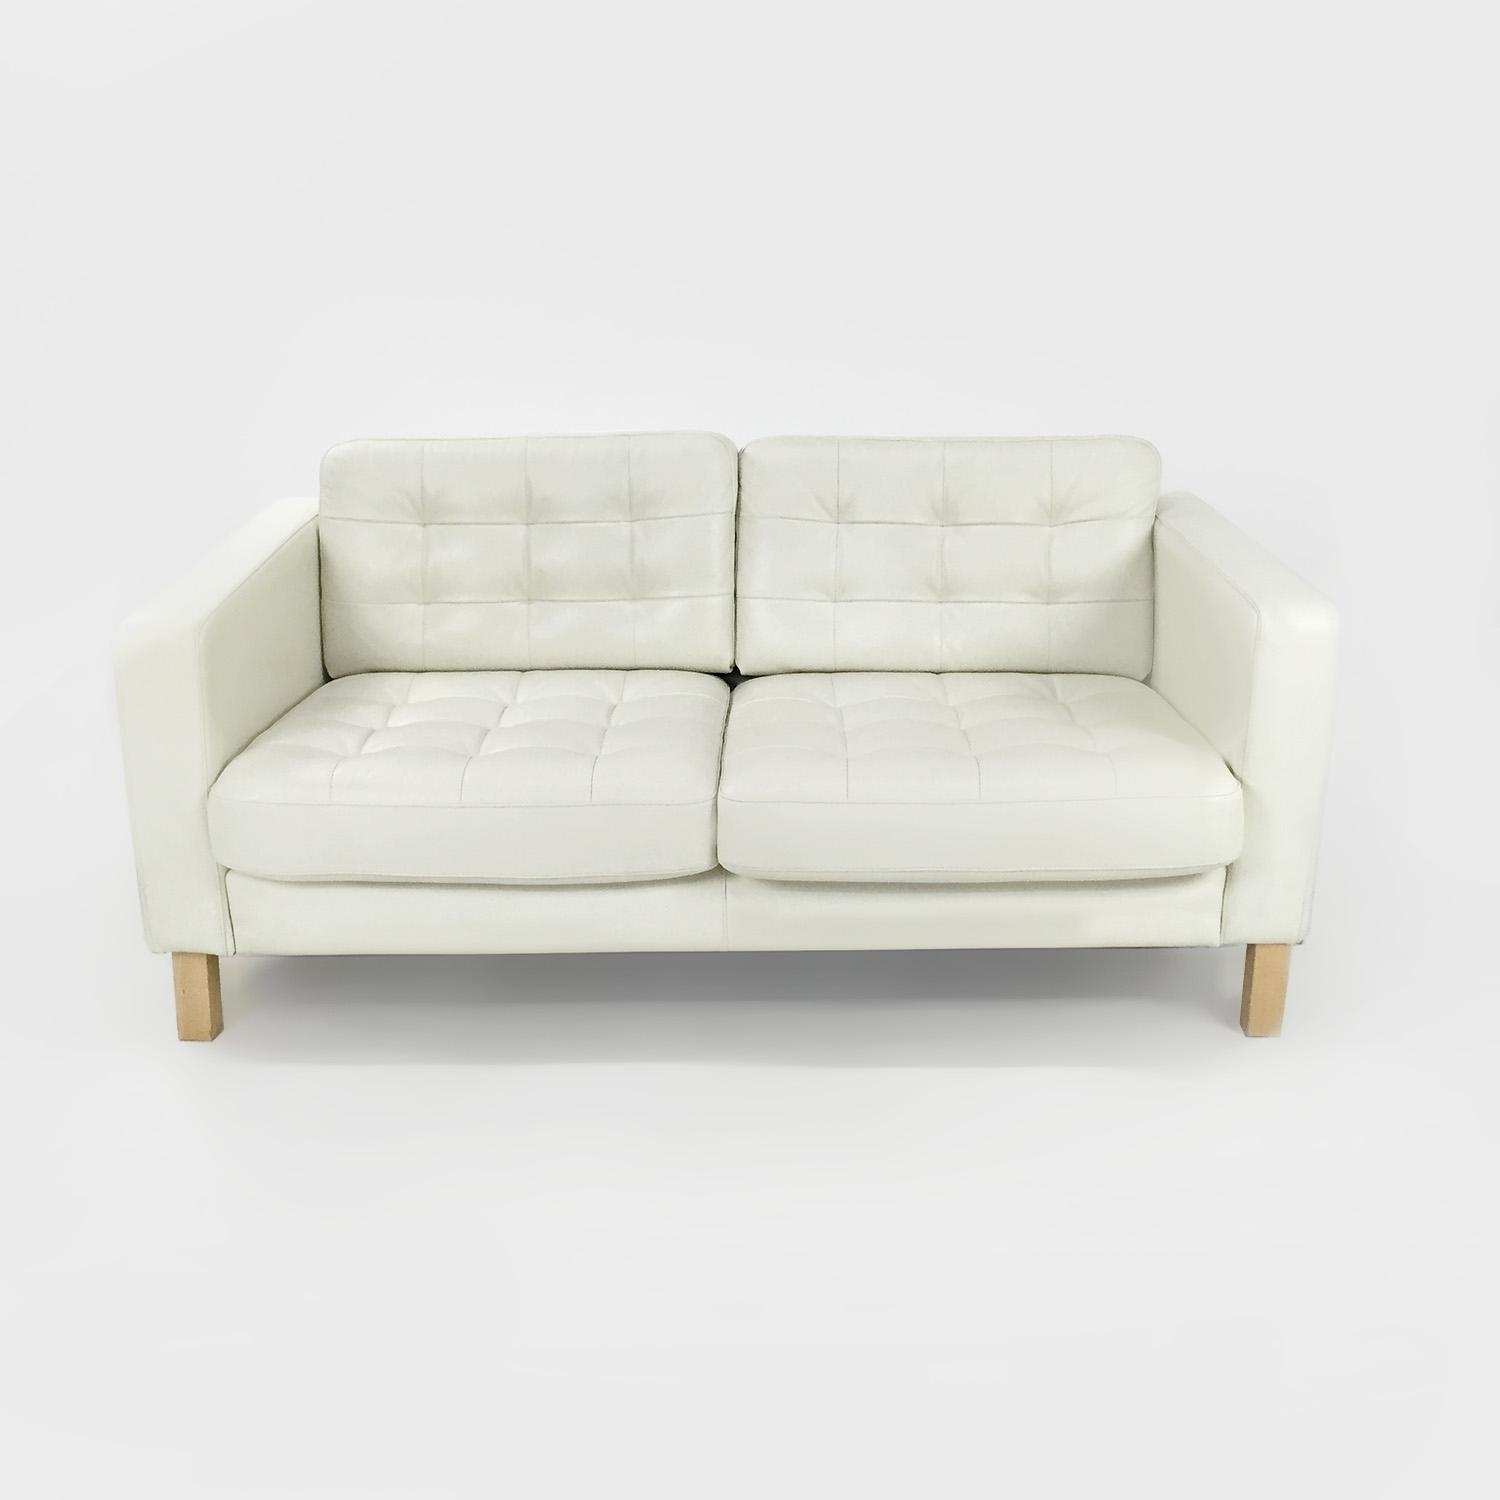 20 Best Collection Of White Leather Corner Sofa: 20 Best Collection Of Off White Leather Sofa And Loveseat